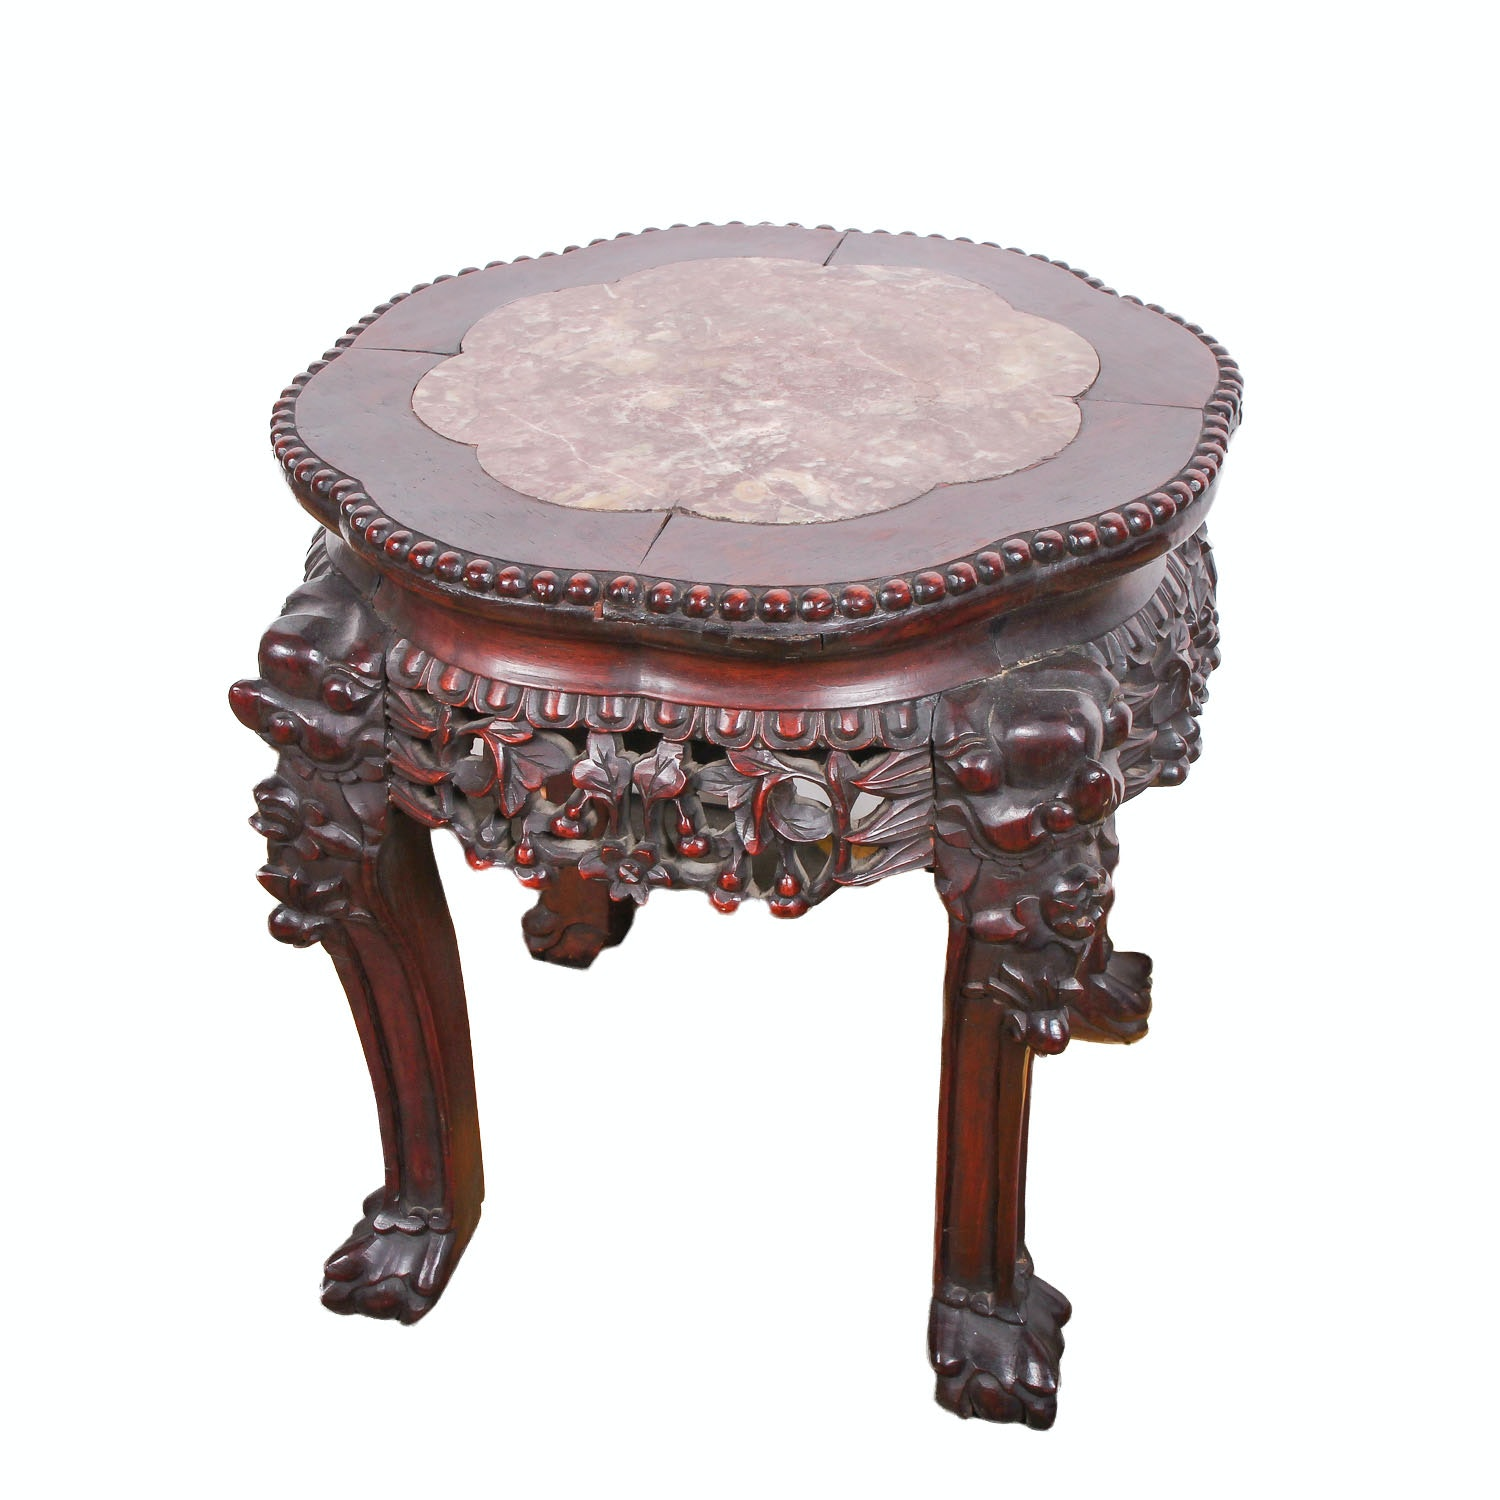 Vintage Chinese Inspired Carved Hardwood Stand with Marble Top